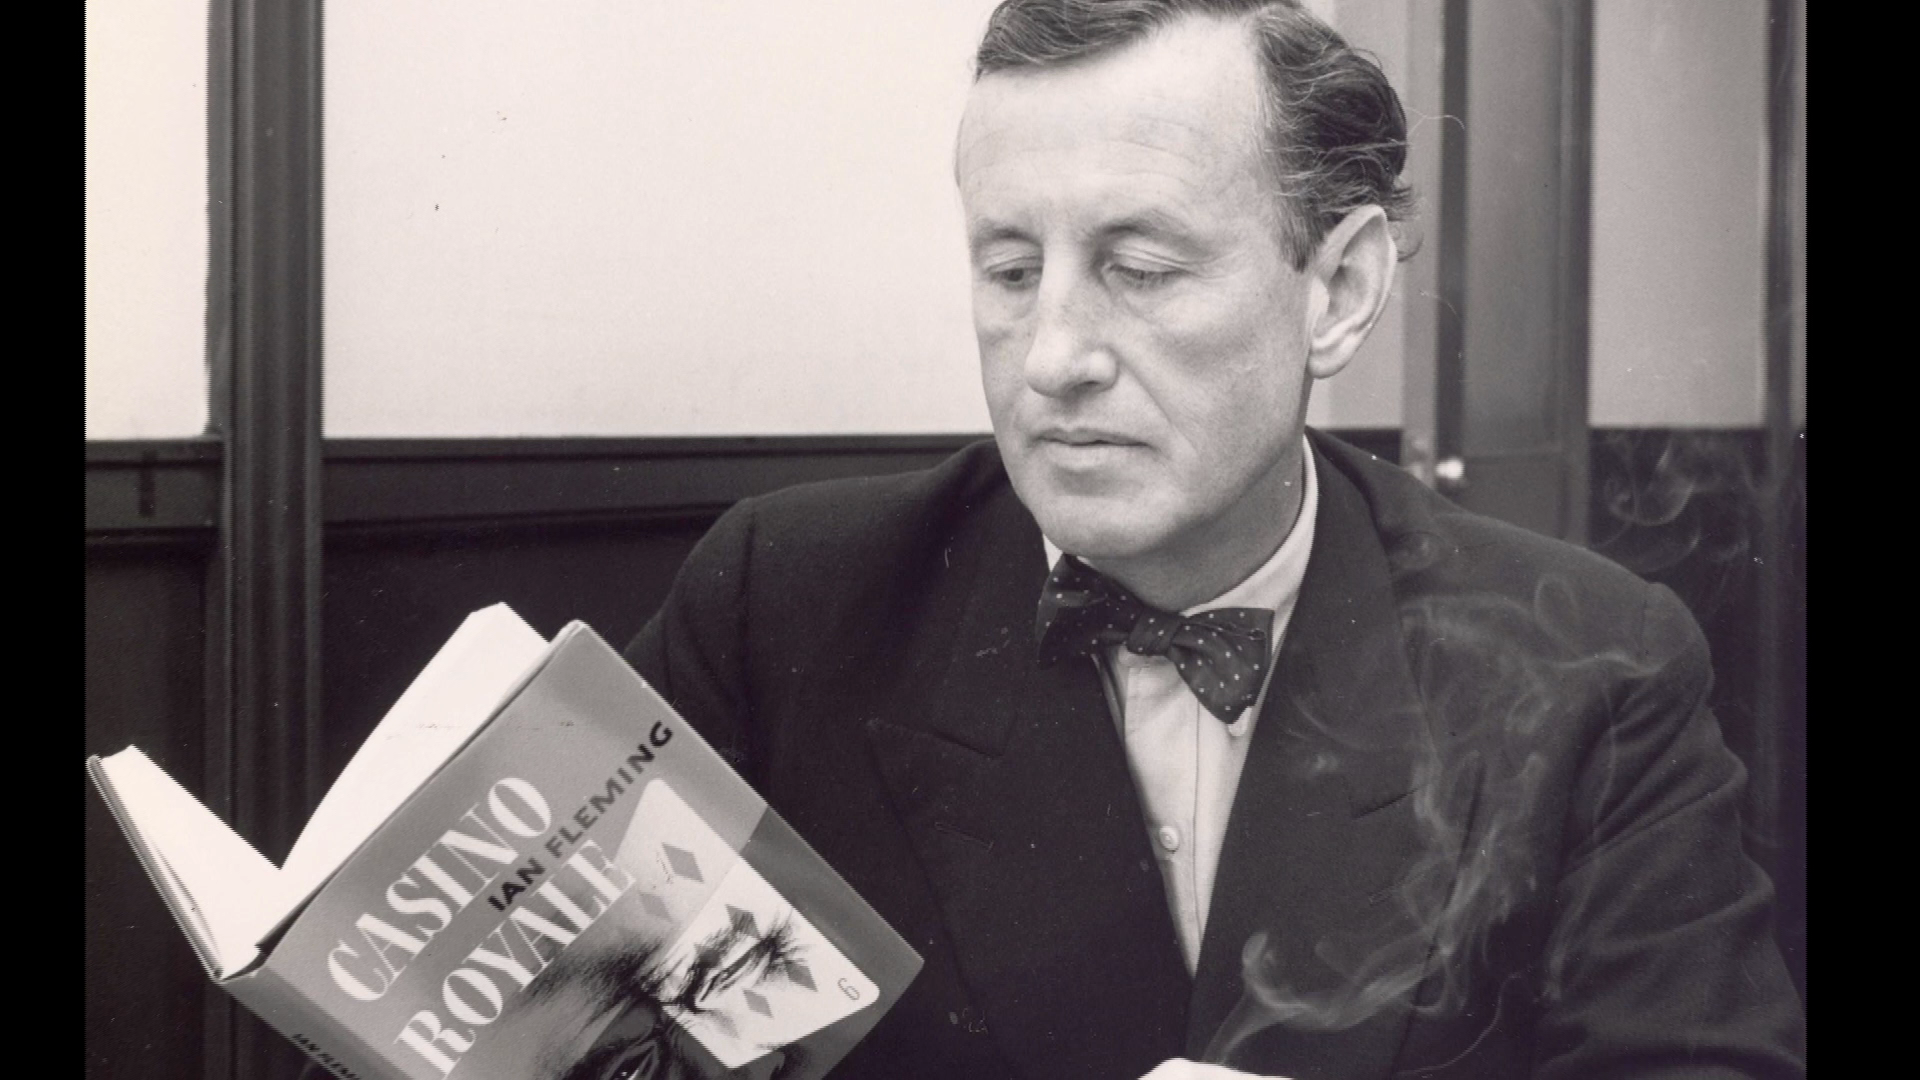 SIR EDWIN FLUFFER RECALLS IAN FLEMING